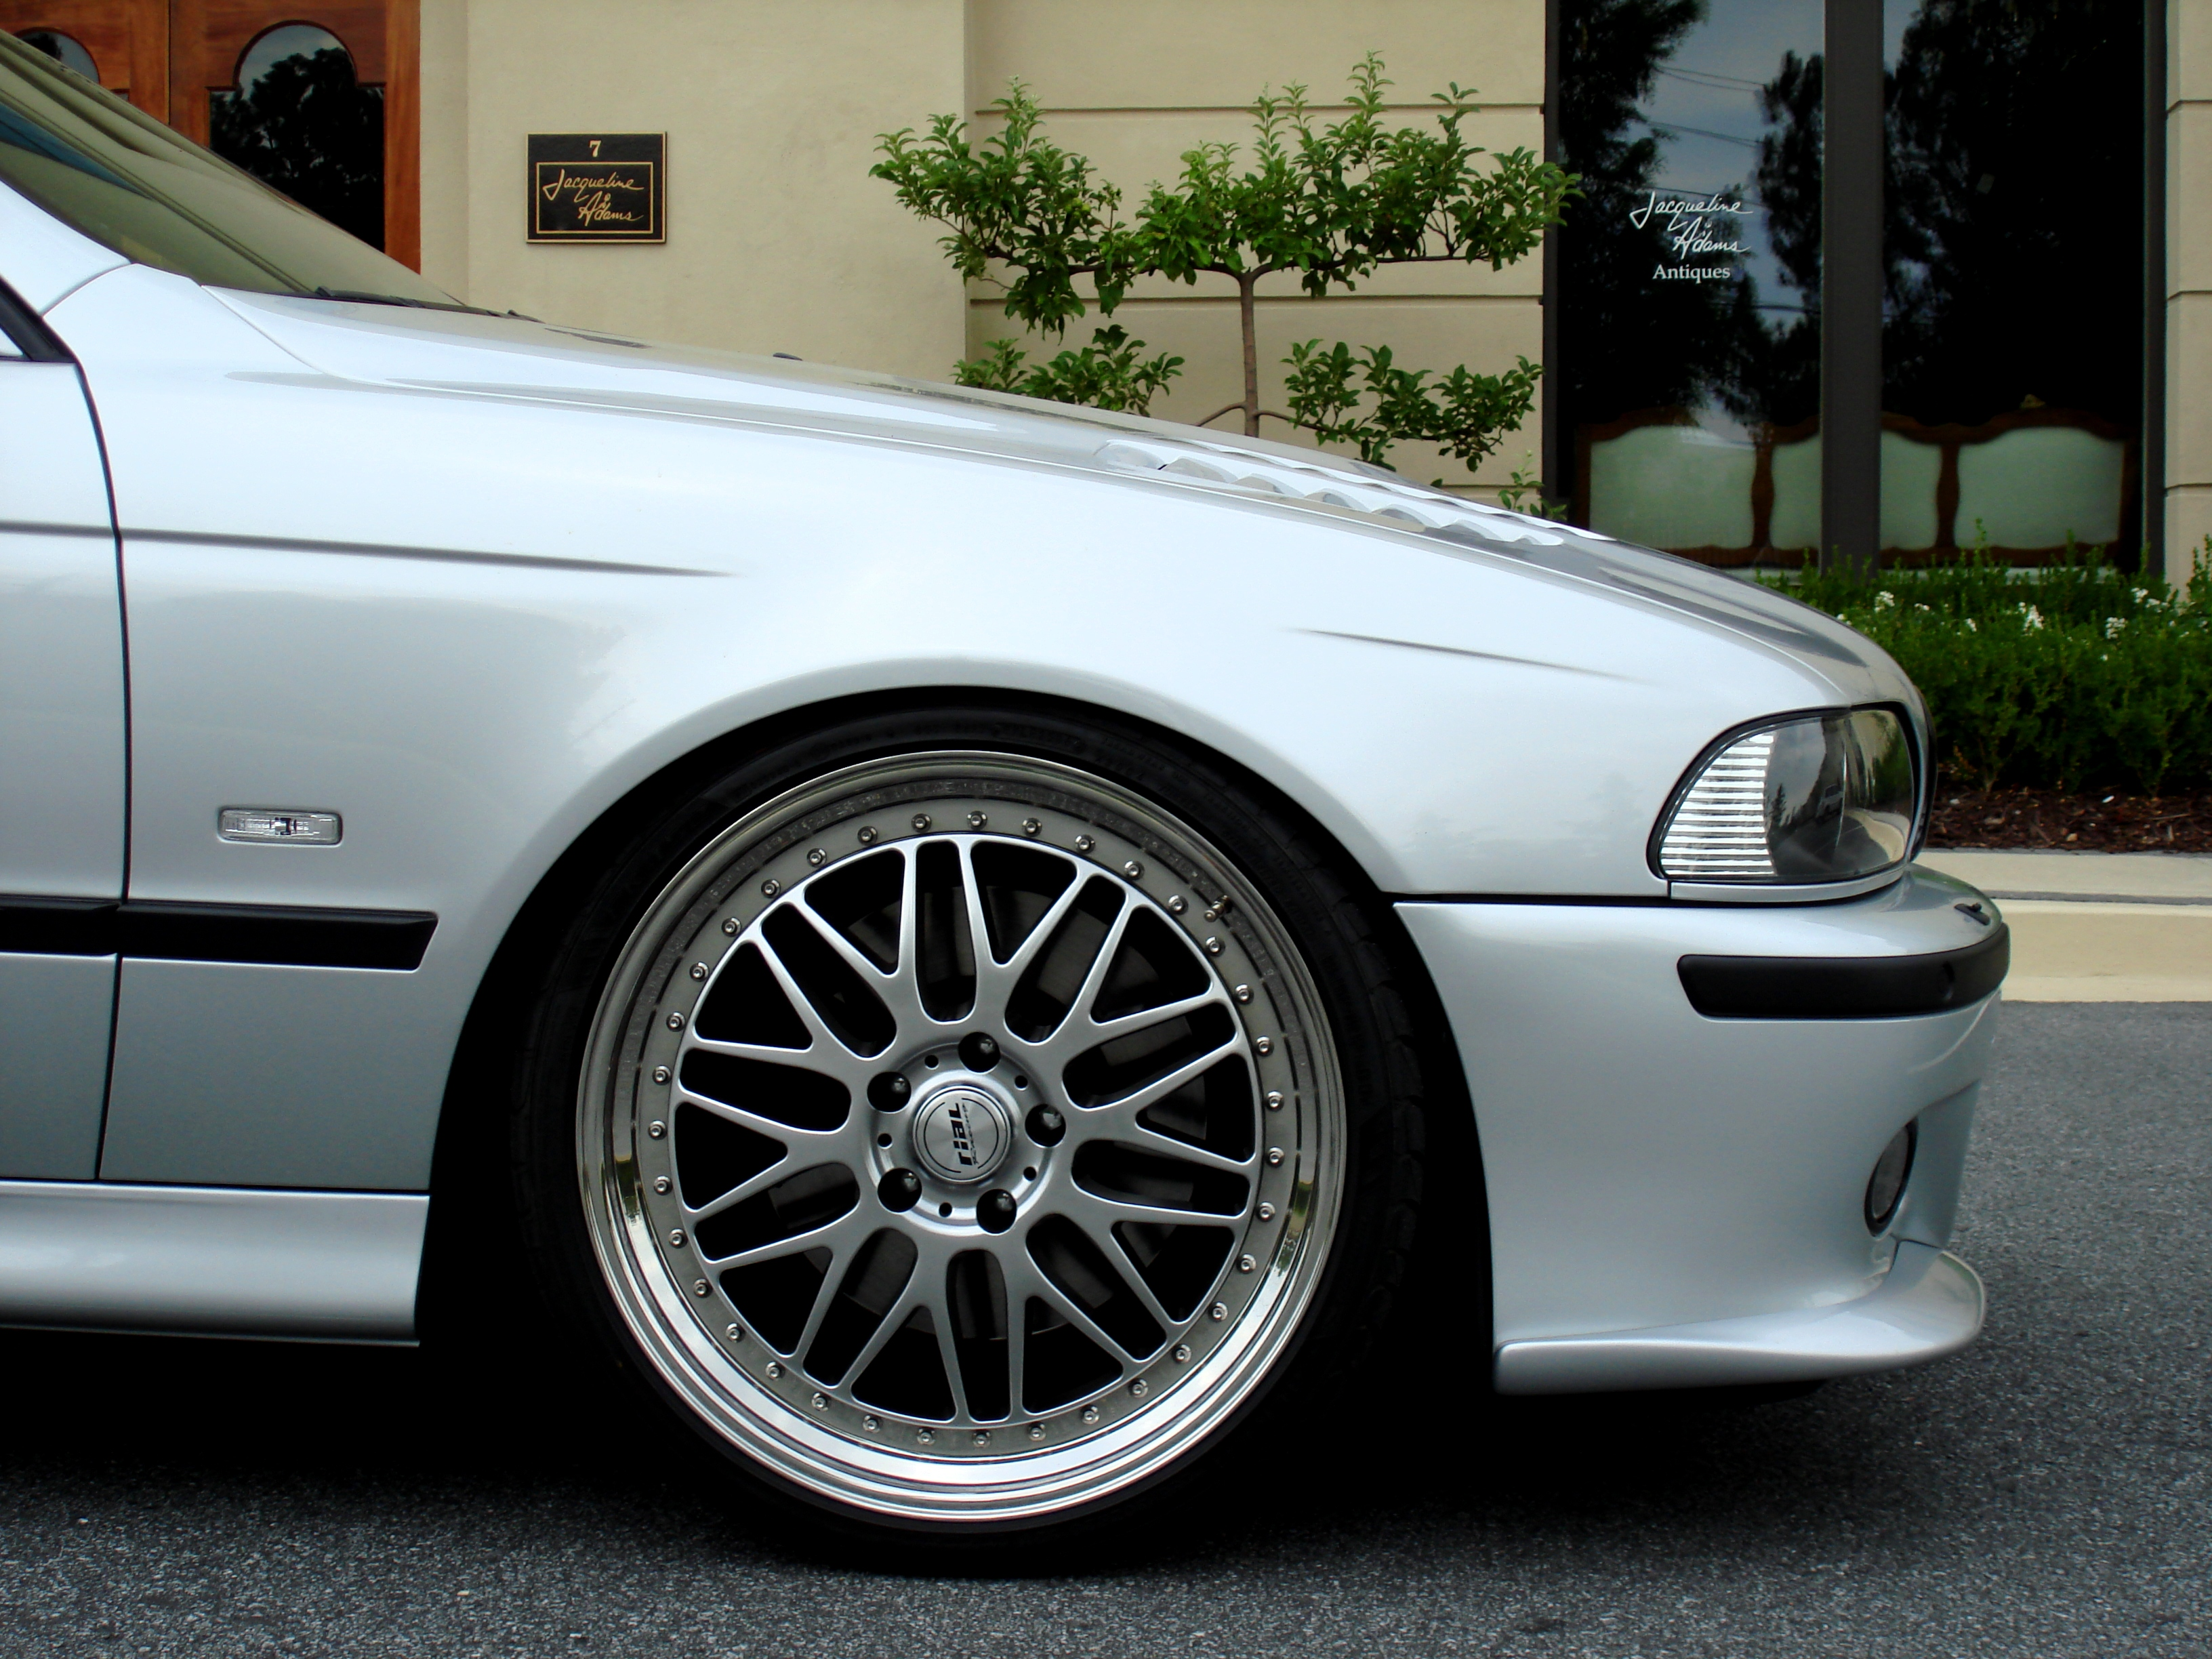 Took Some Photos Today-front-wheel.jpg